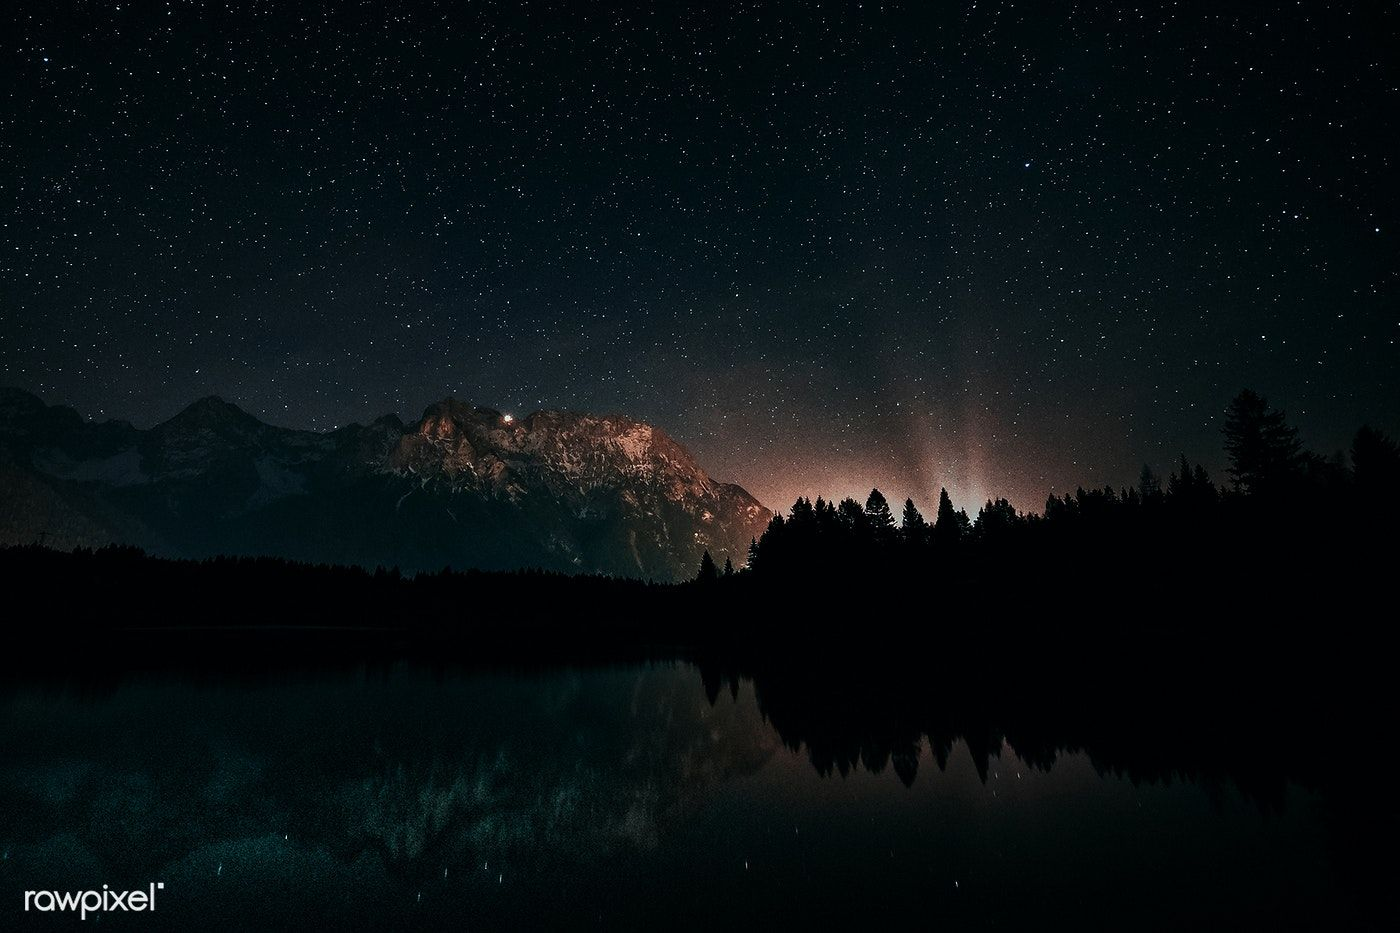 Starry Sky Above Lake Antholz Free Image By Rawpixel Com Eberhard Grossgasteiger Hd Wallpapers For Laptop Night Landscape Photography Laptop Wallpaper Wallpaper night starry sky lake trees